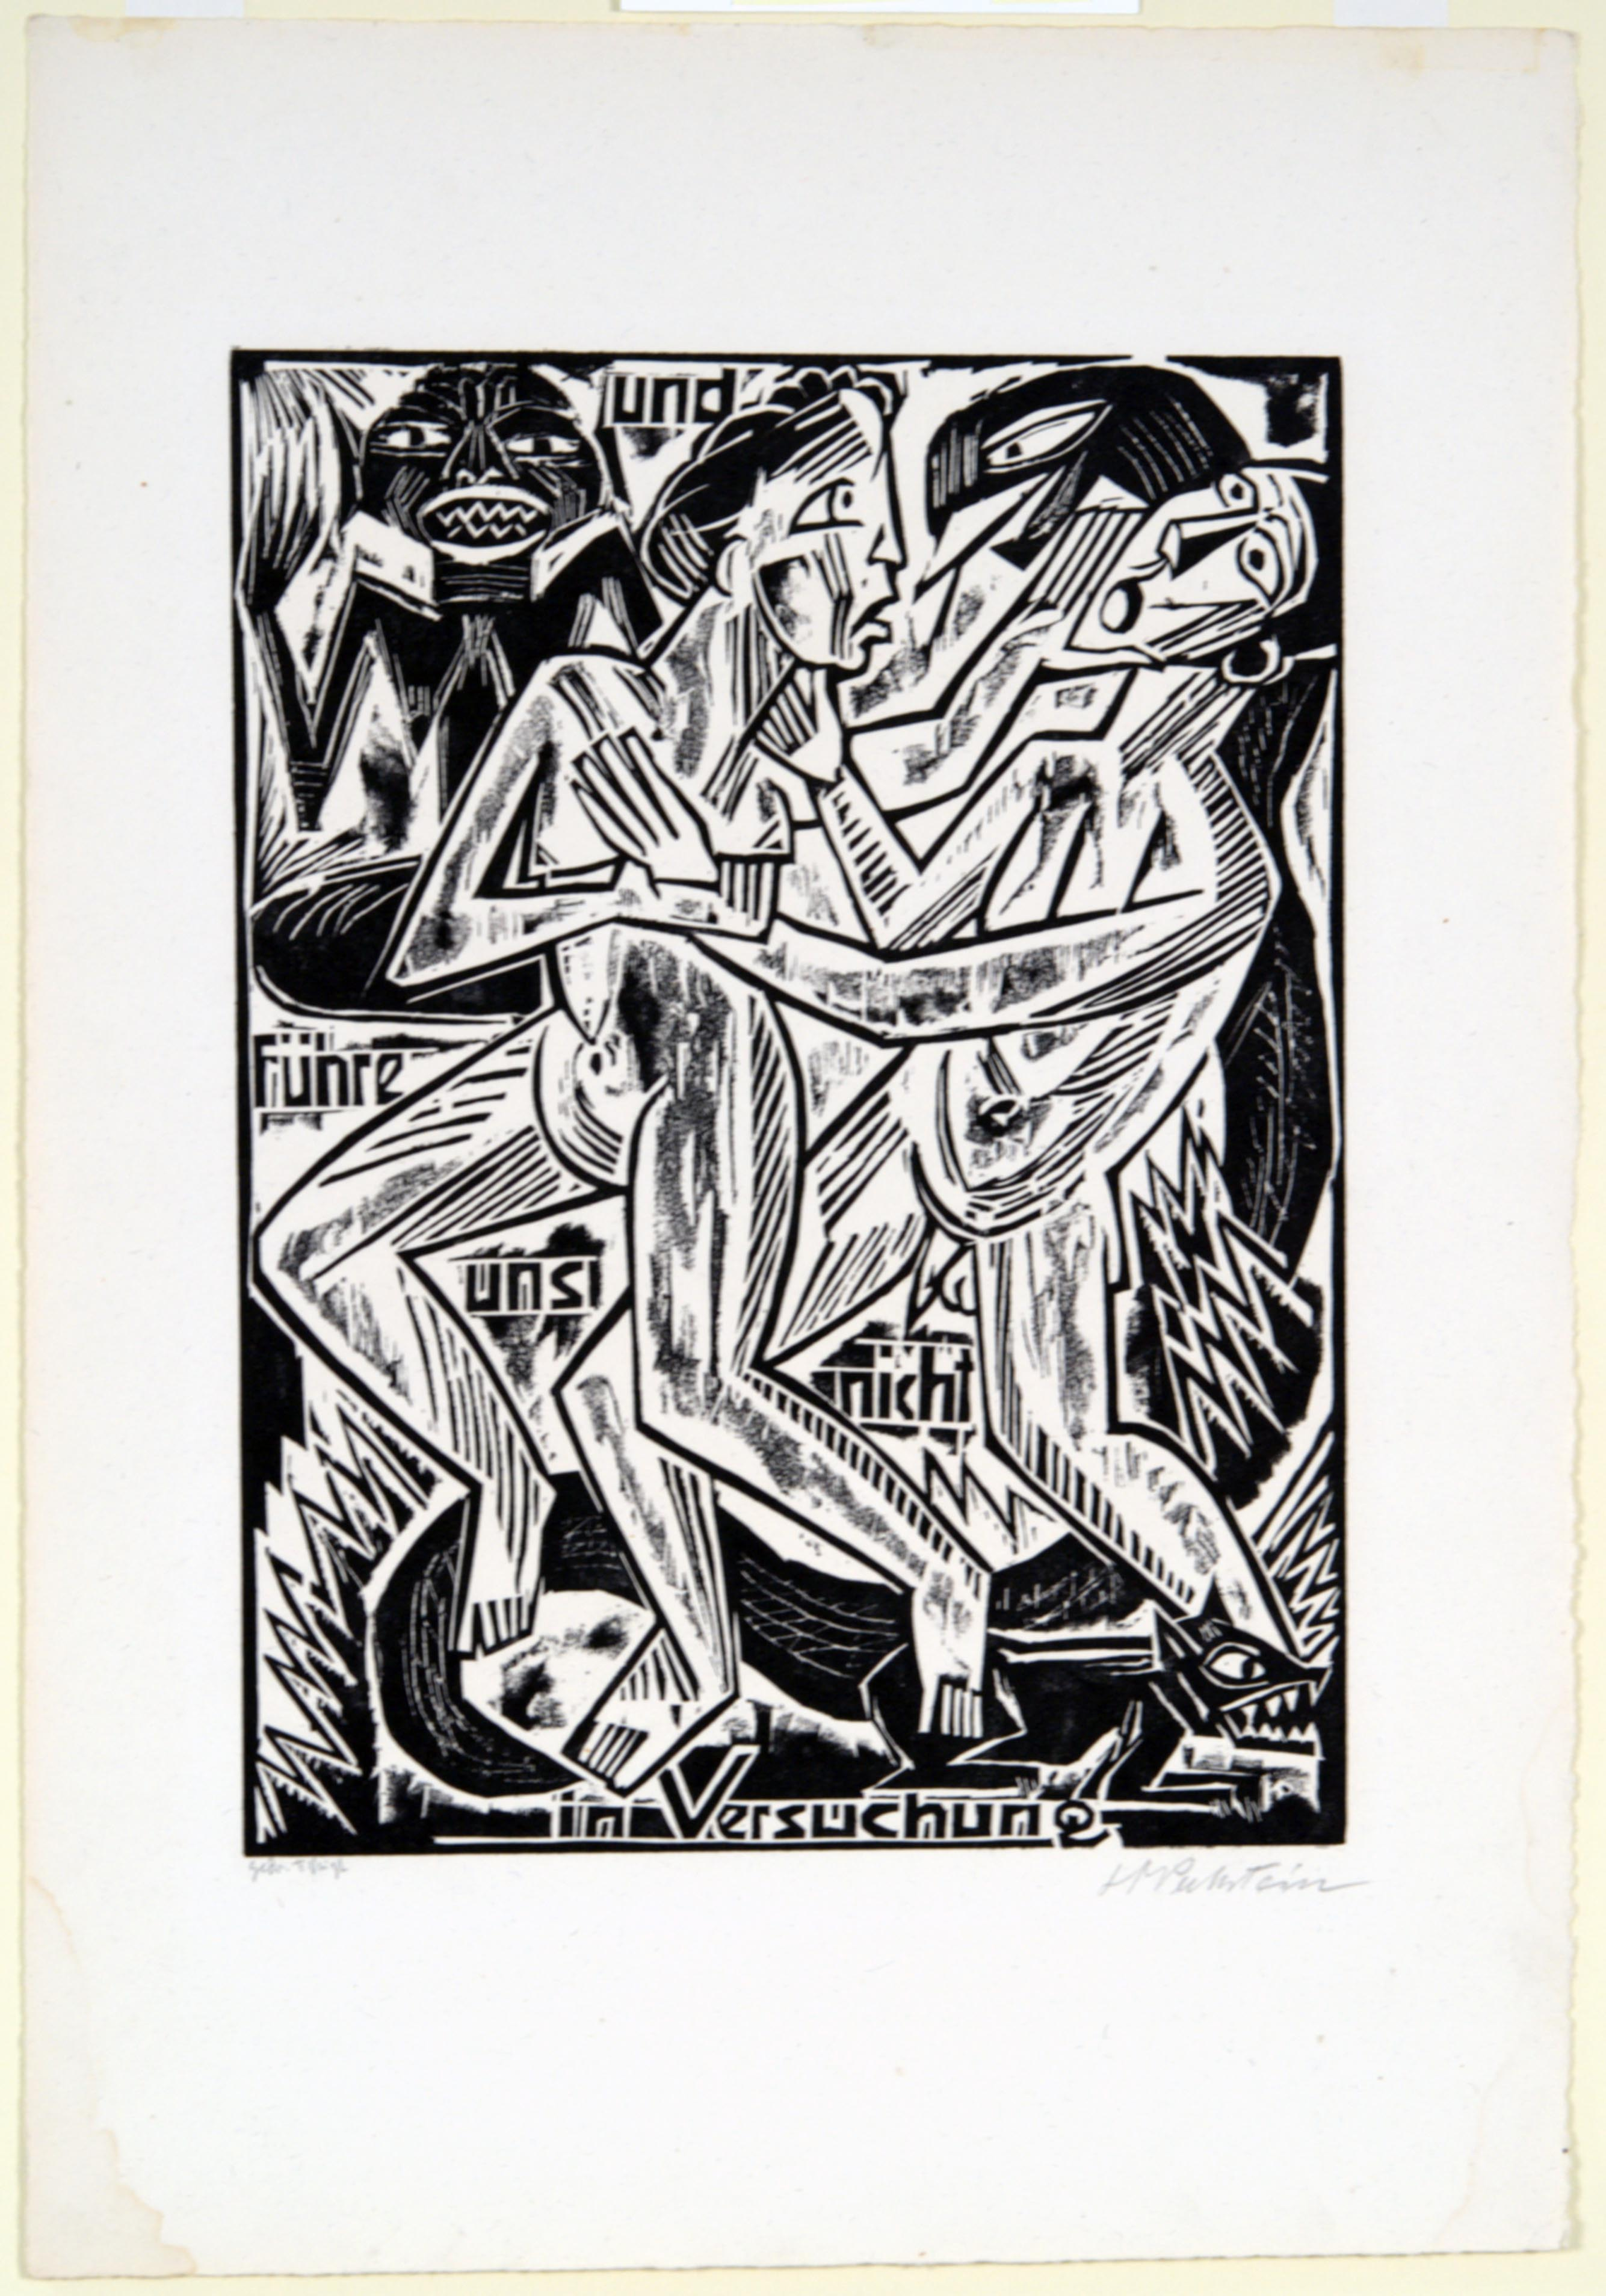 Max Pechstein, And Lead us Not into Temptation, 1921